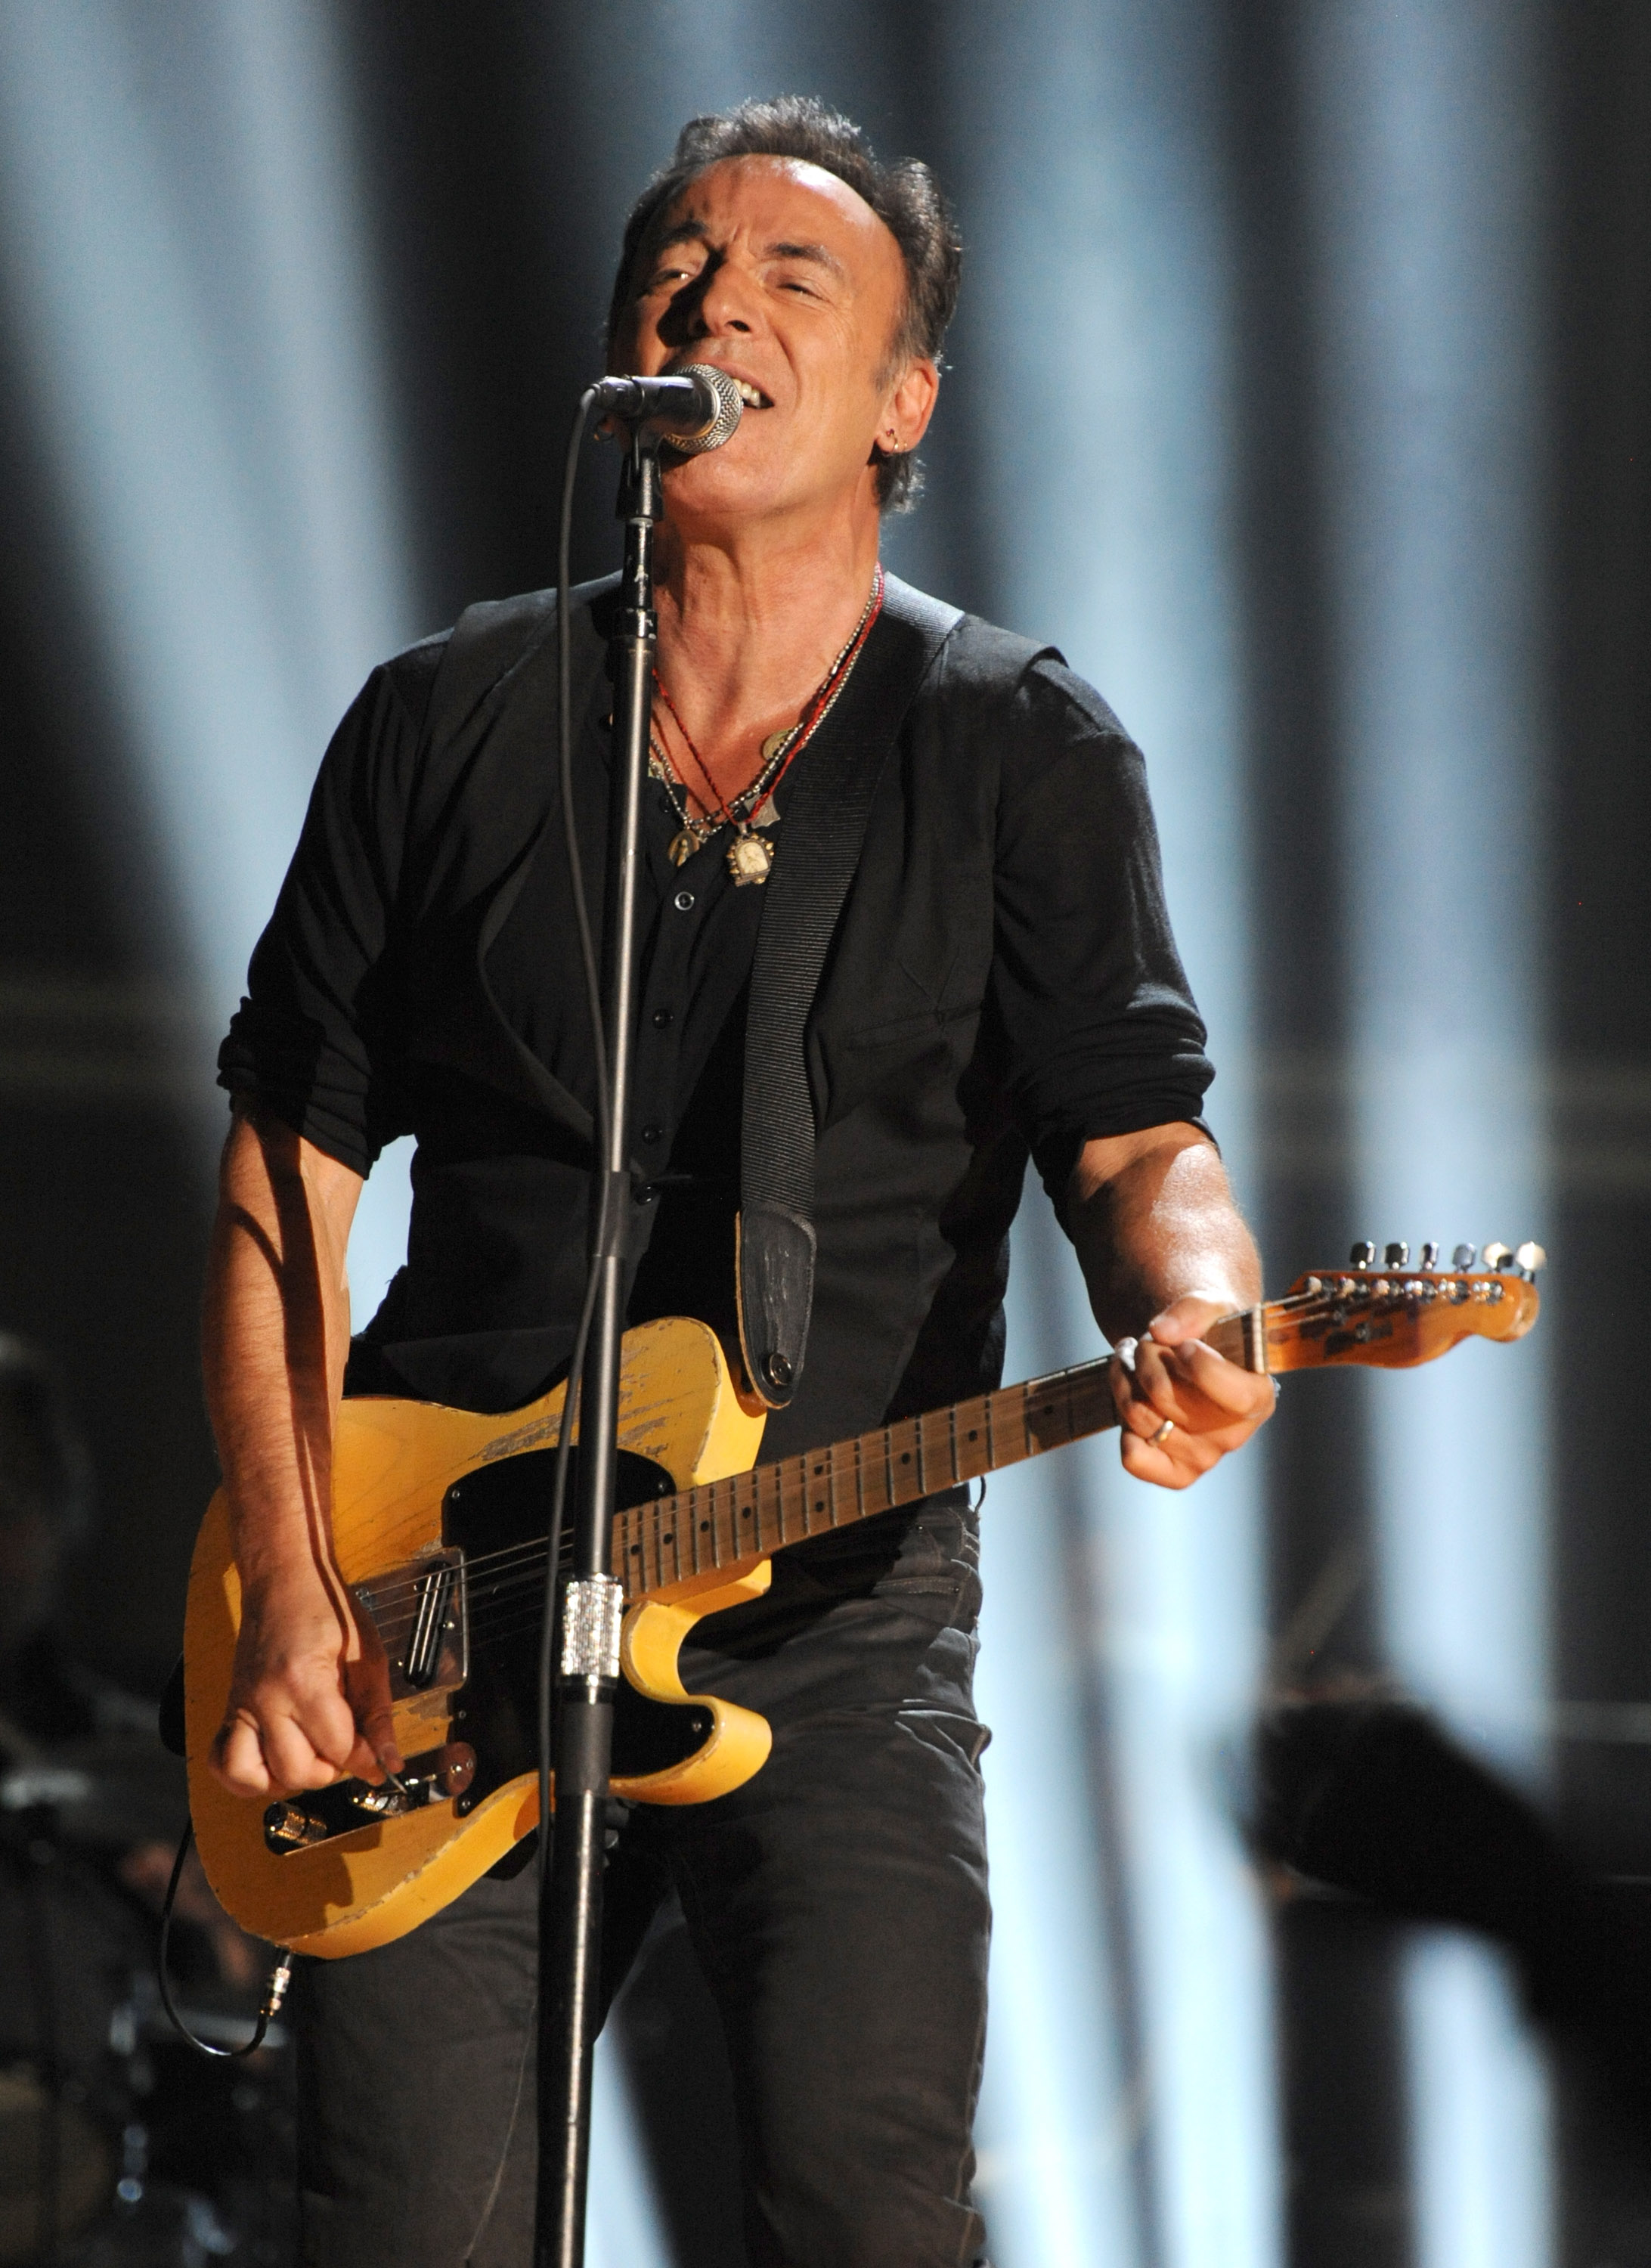 LOS ANGELES, CA - FEBRUARY 12: Bruce Springsteen performs onstage at The 54th Annual GRAMMY Awards at Staples Center on February 12, 2012 in Los Angeles, California. (Photo by Kevin Mazur/WireImage)